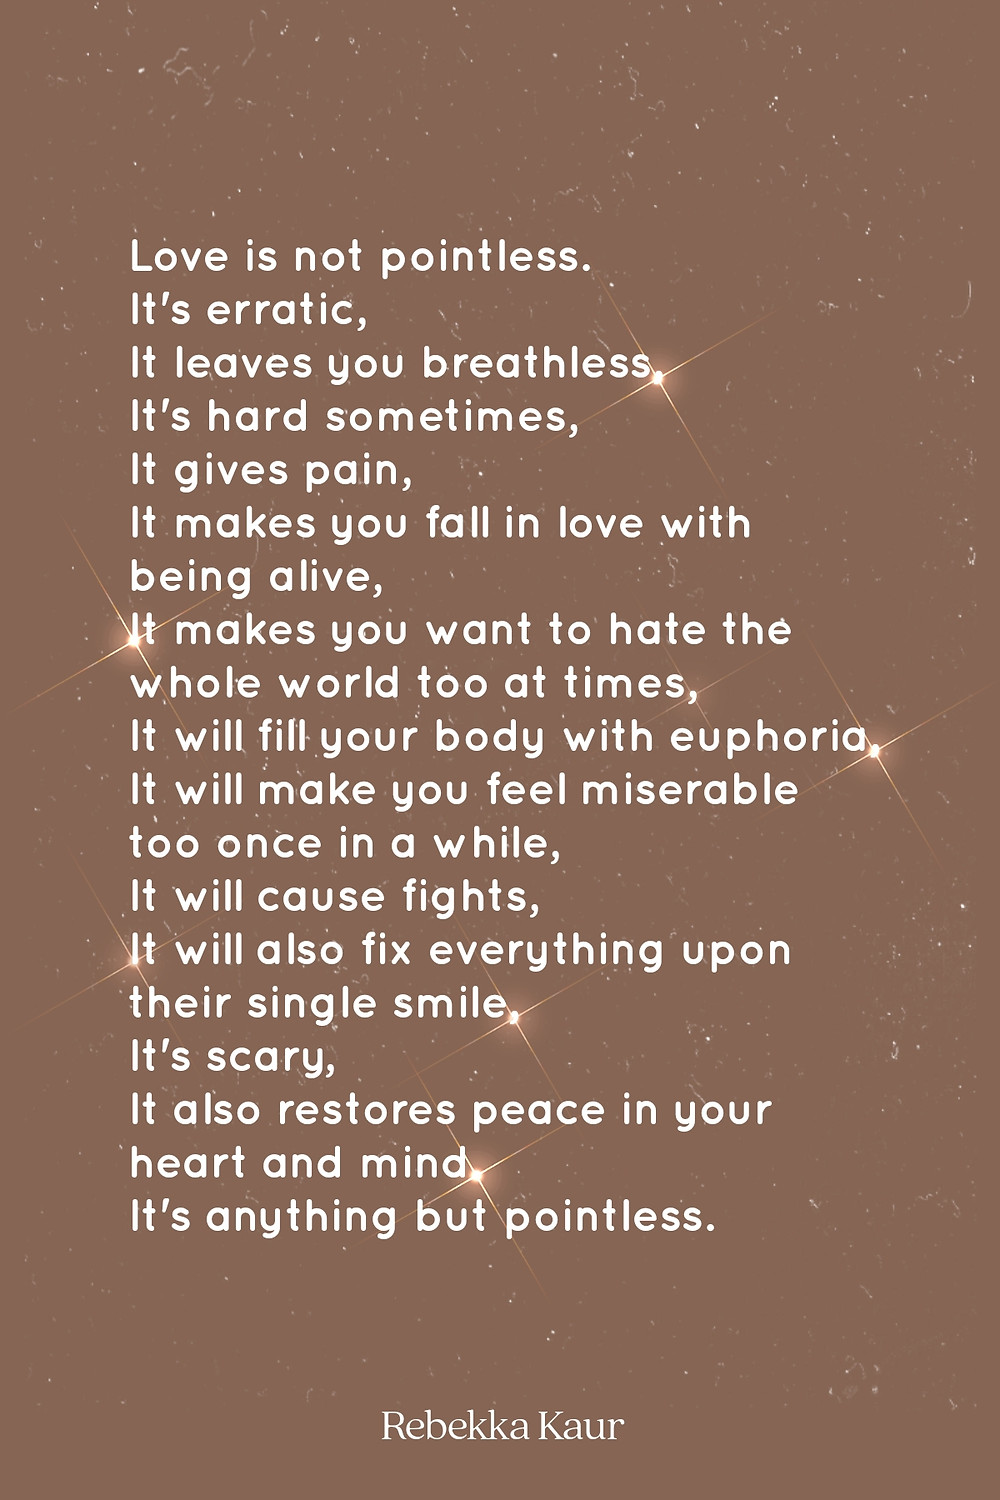 Poems about love